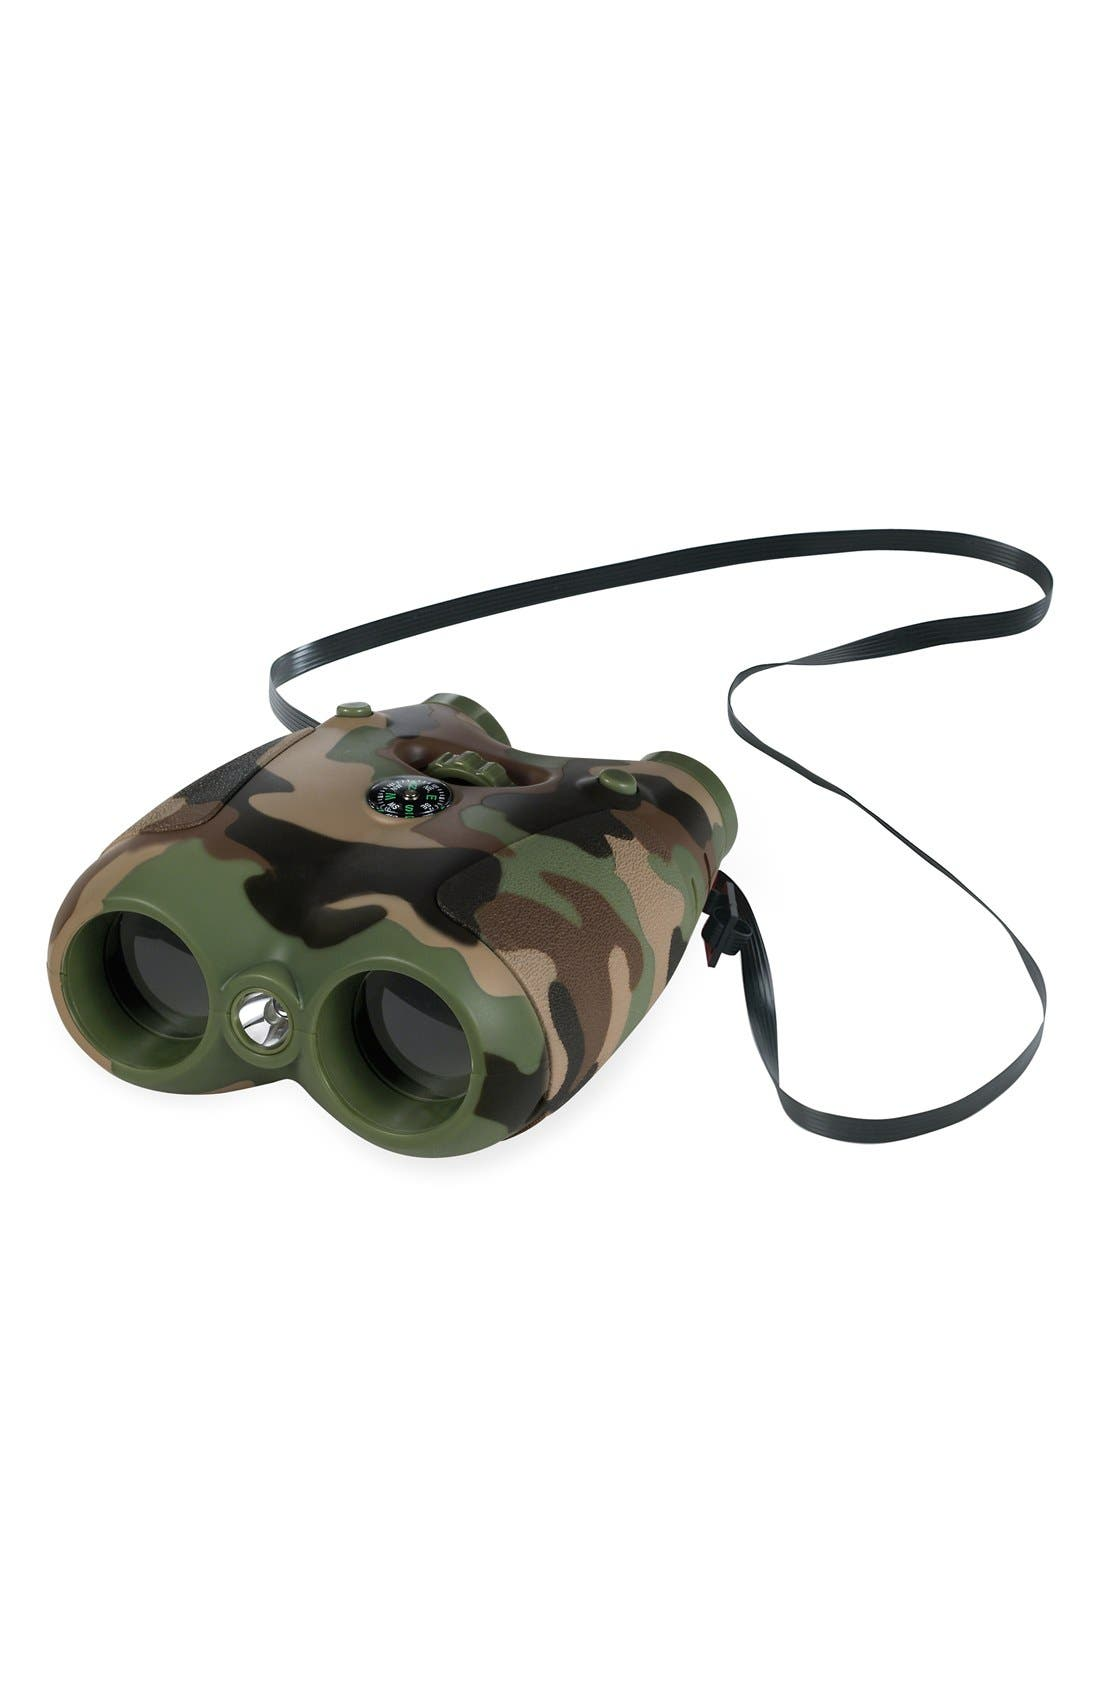 Camouflage Binoculars,                             Main thumbnail 1, color,                             No Color